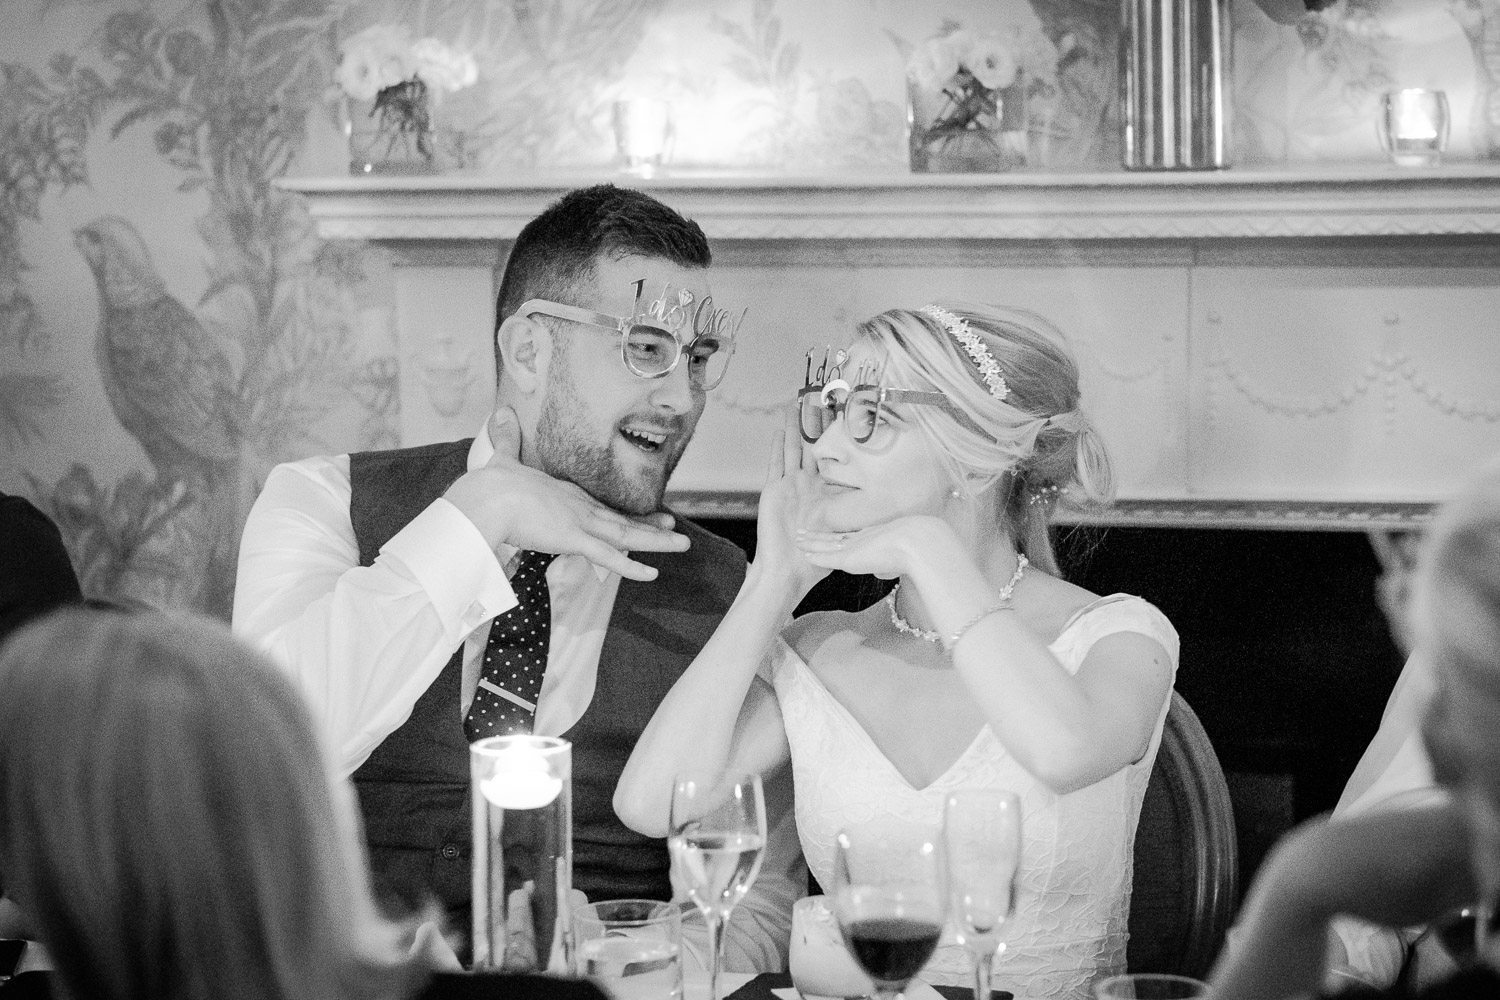 Documenting Rachel and Liam's intimate wedding at Nottingham's World Service Restaurant, bride and groom having fun with wedding glasses